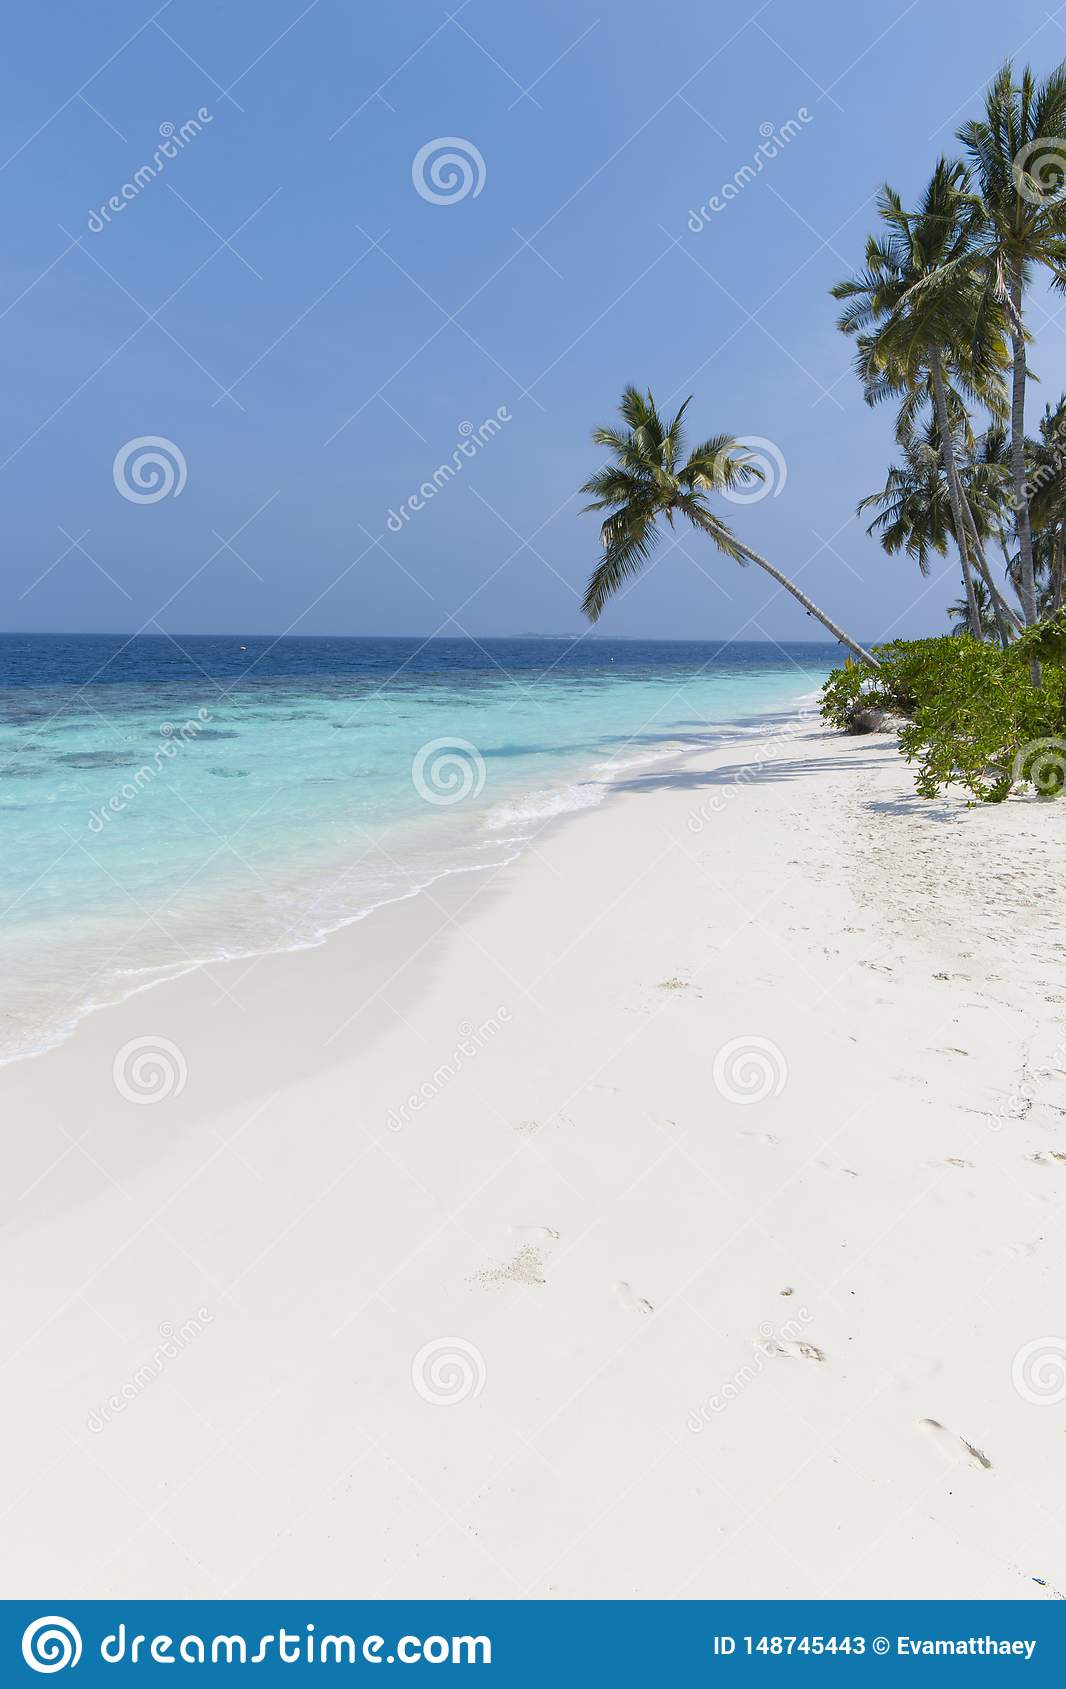 Coconut tree on a white sandy beach and crystal clear water in the Maldives